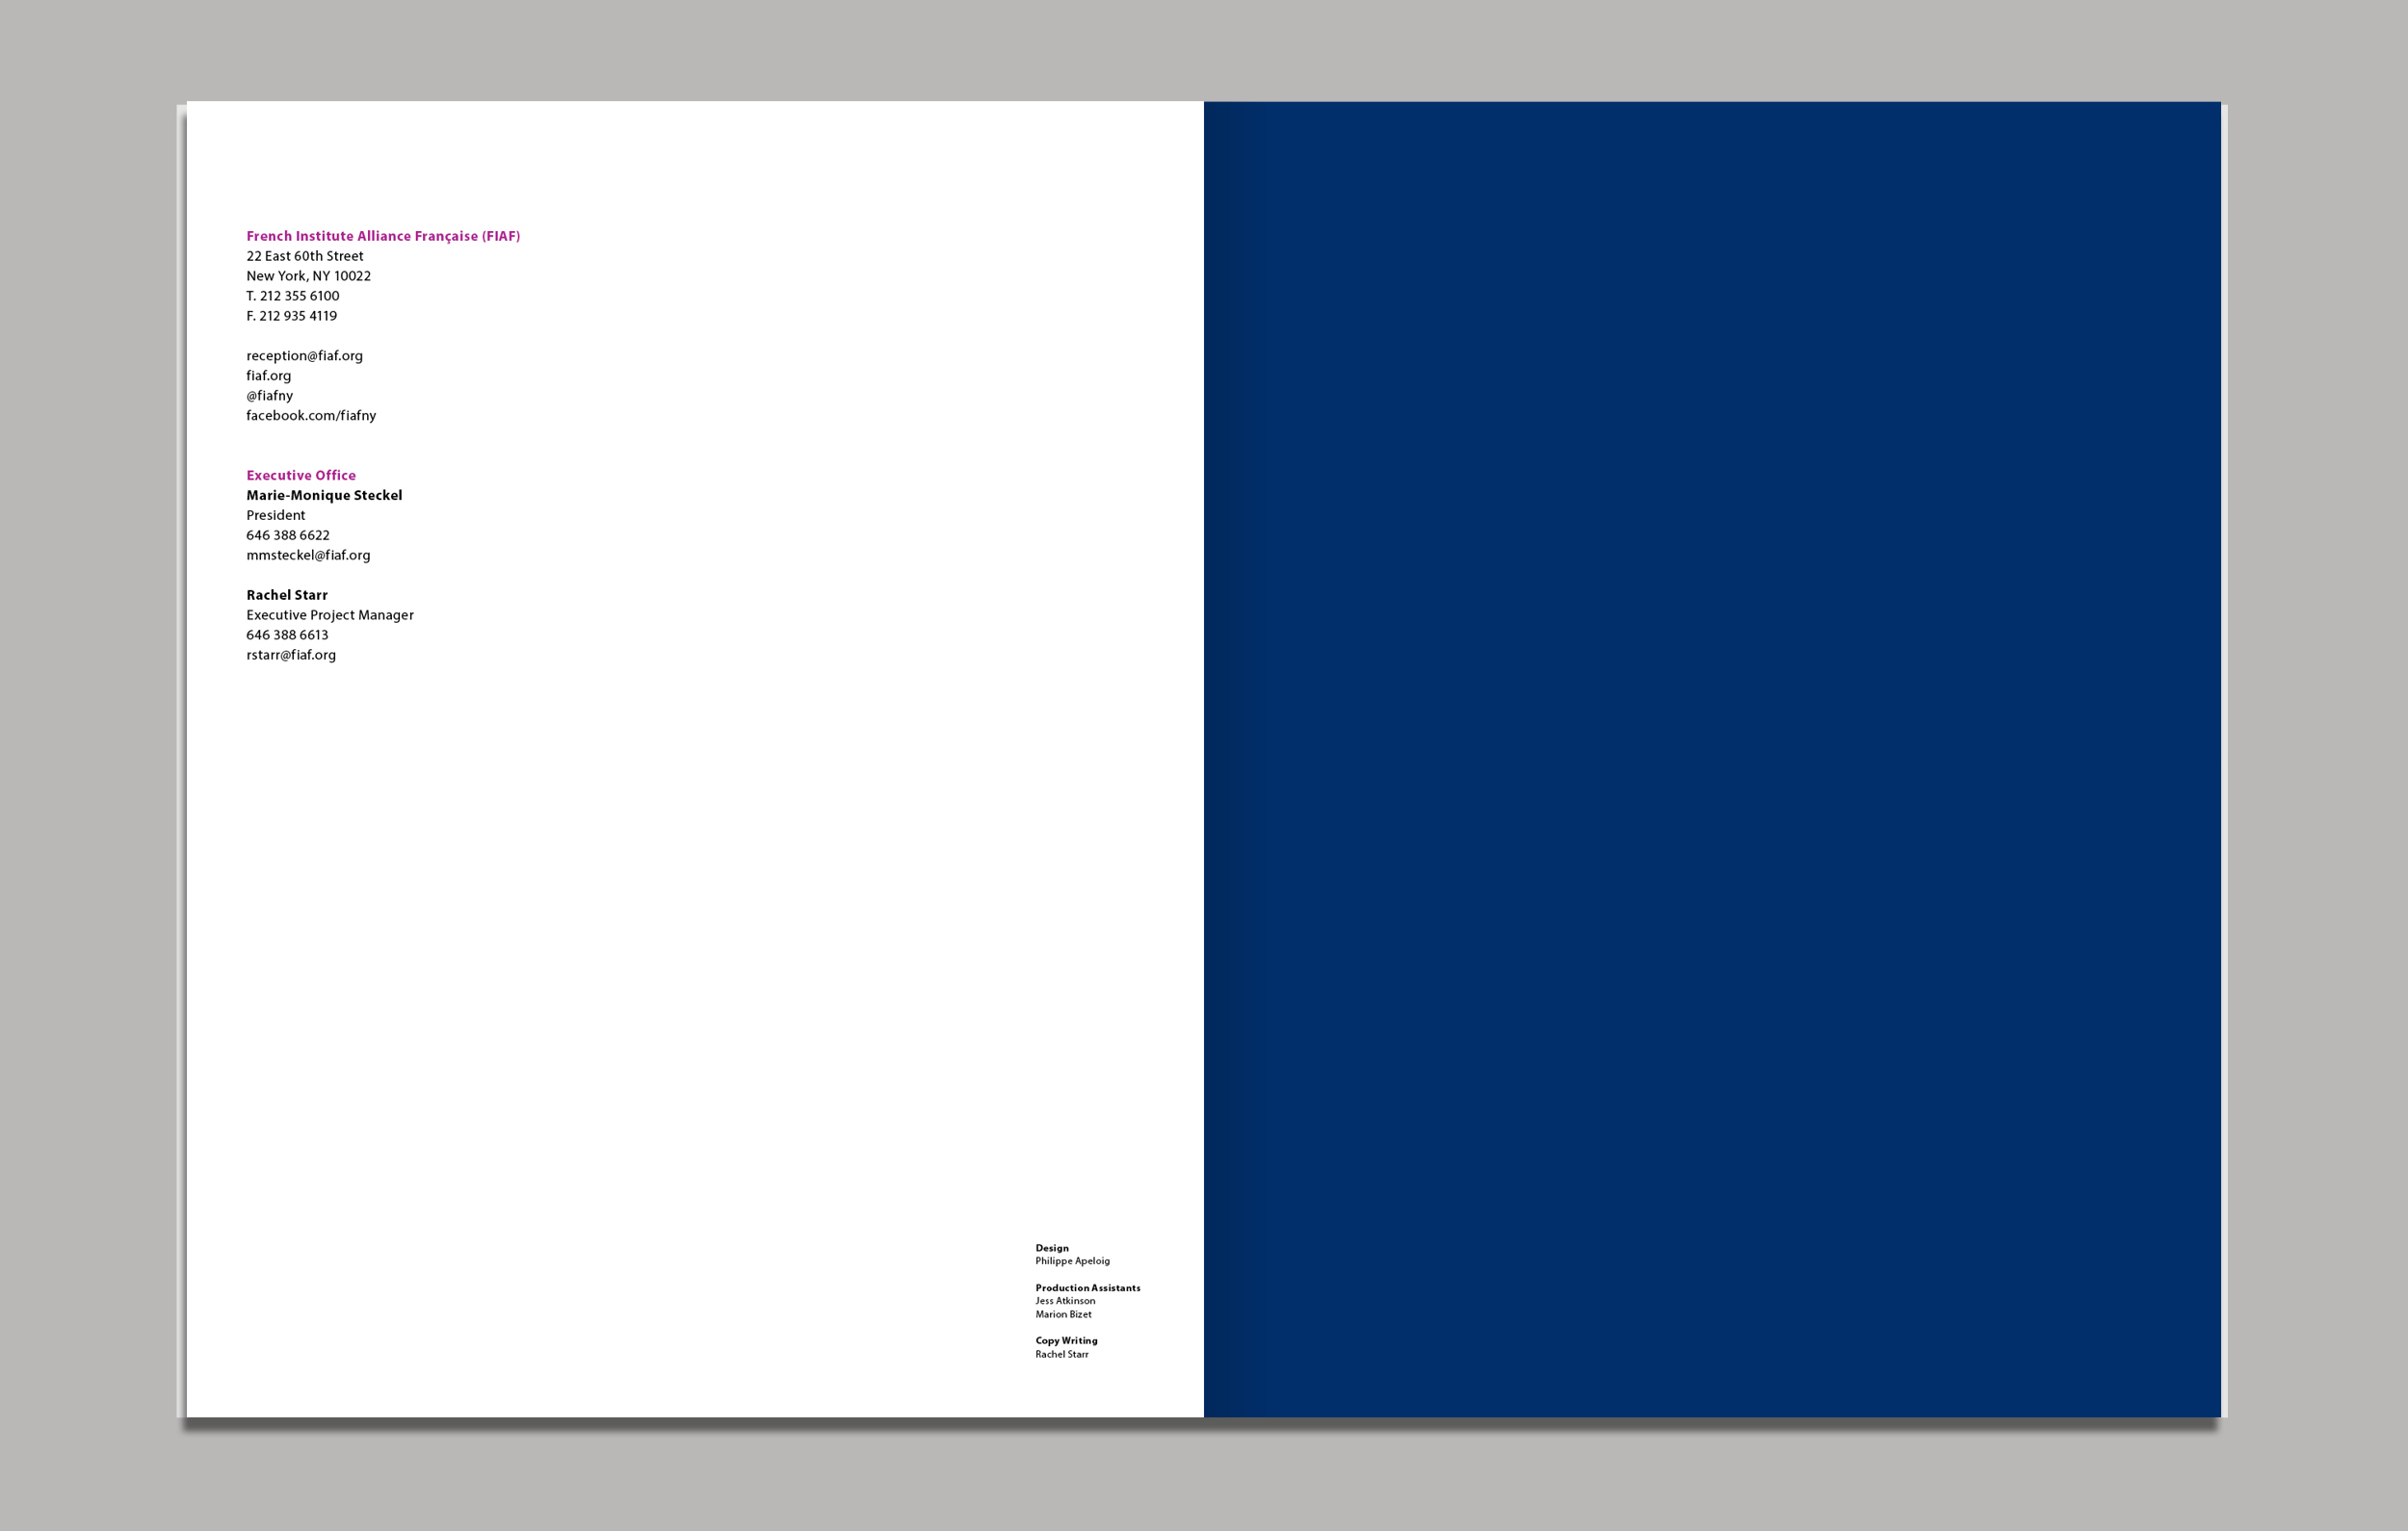 FIAF Annual Report Marion Bizet18.jpg